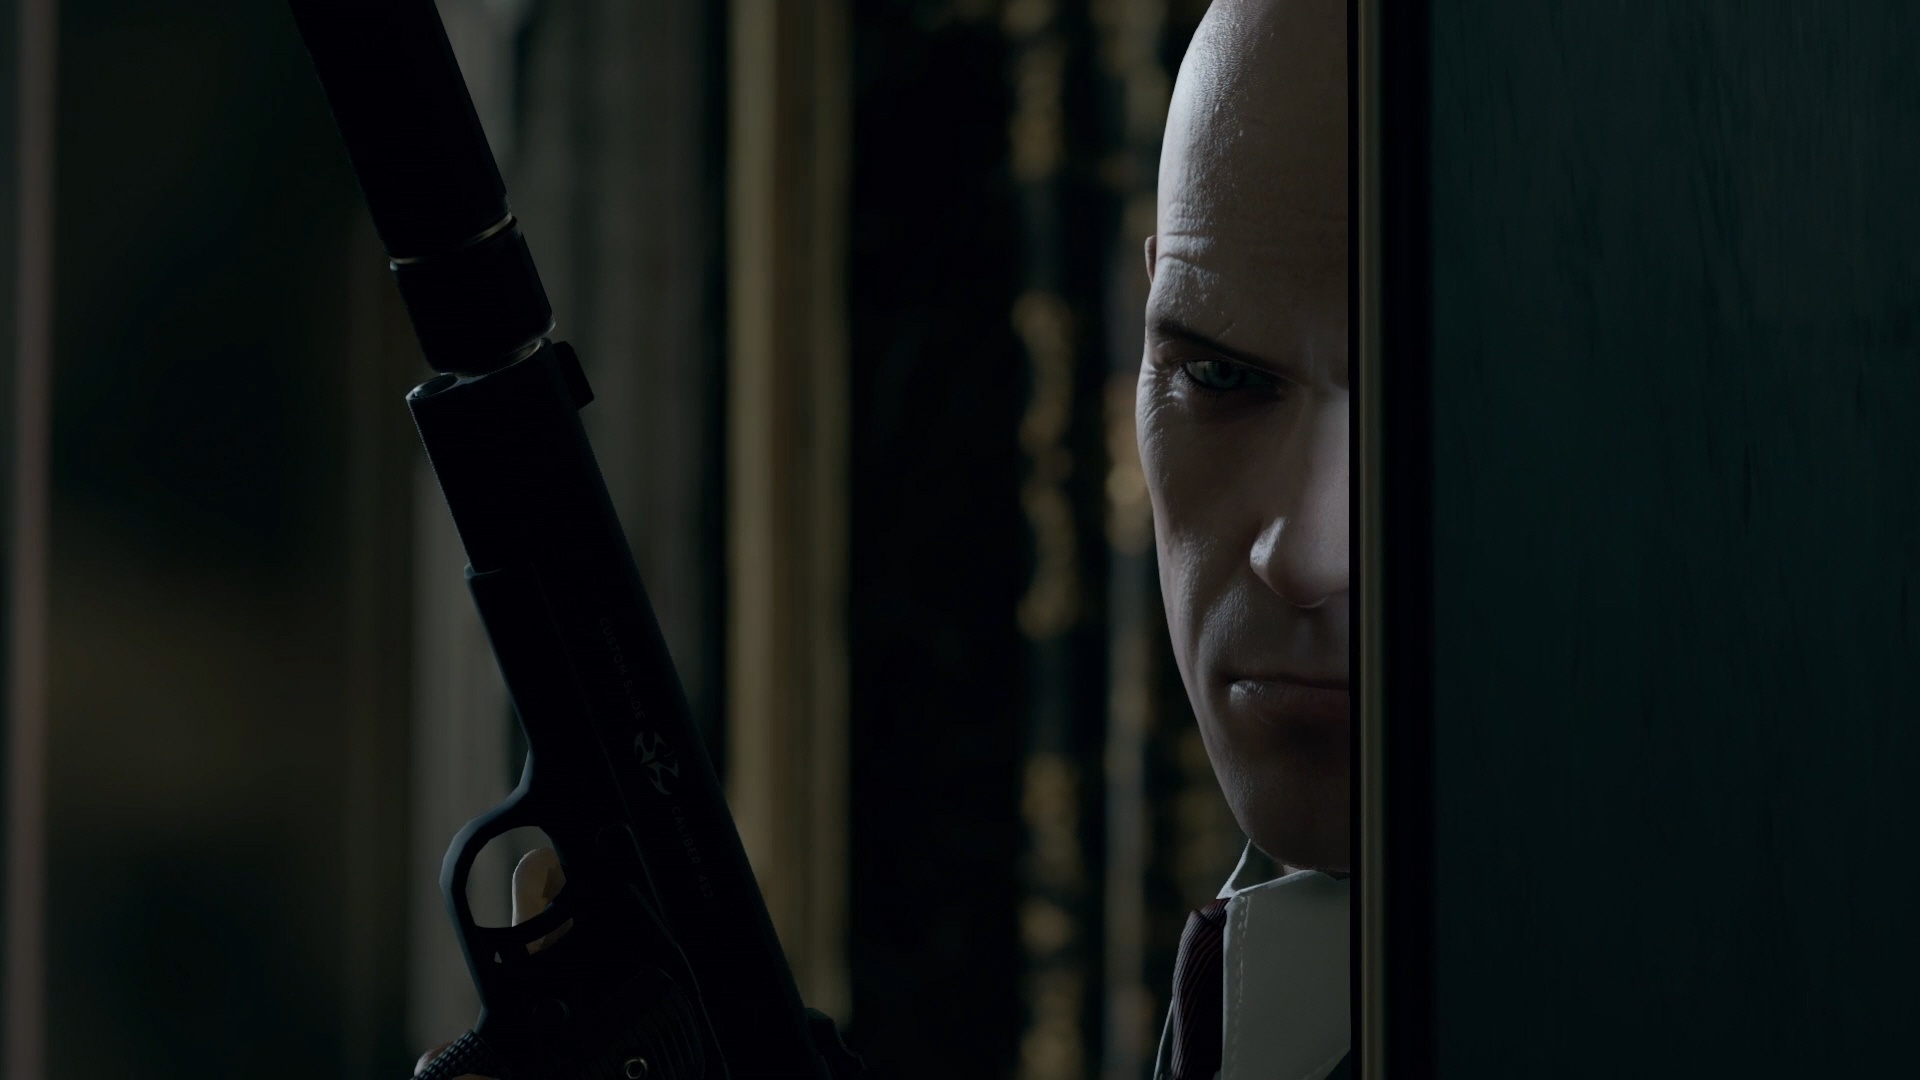 Hitman 2016 hd wallpaper background image 1920x1080 id 720262 wallpaper abyss - Agent 47 wallpaper ...